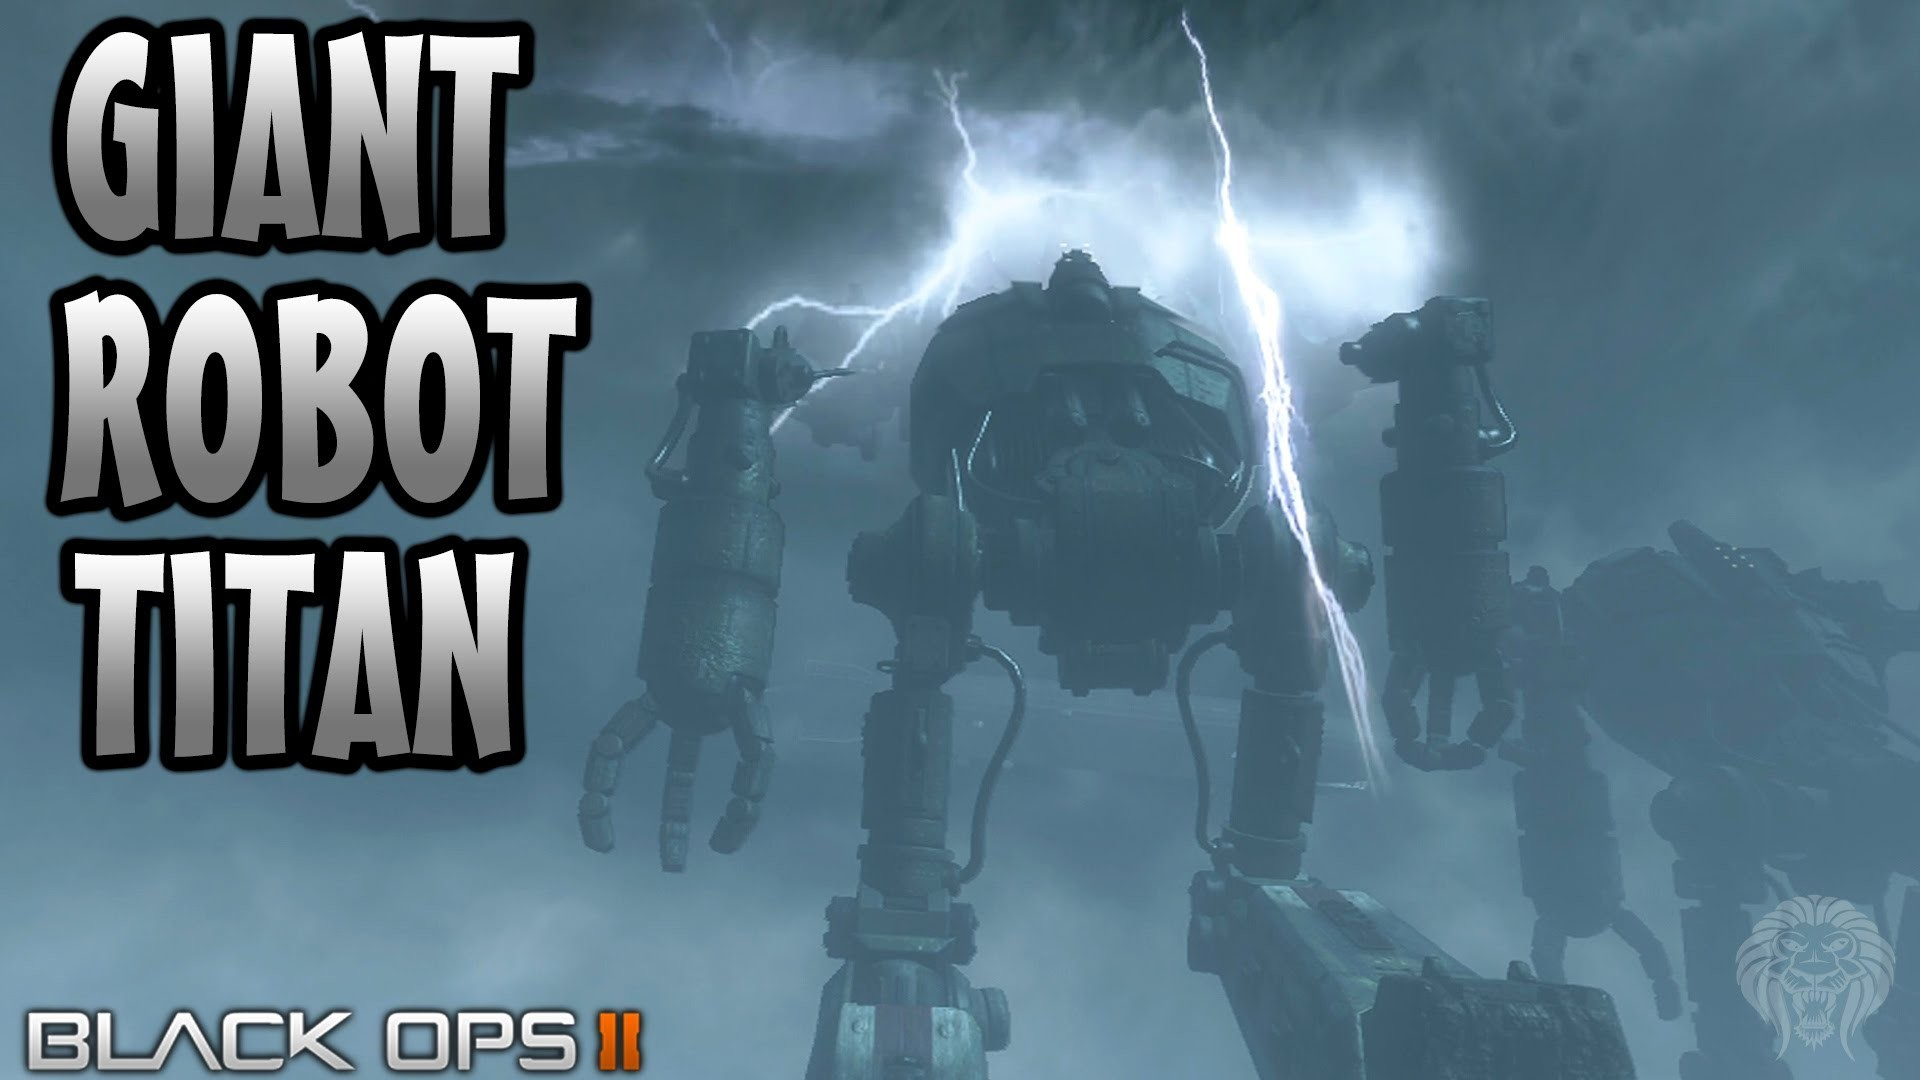 ORIGINS ZOMBIES: Can You Destroy the Giant Metal Robots? (COD Black Ops 2  Zombies) – YouTube